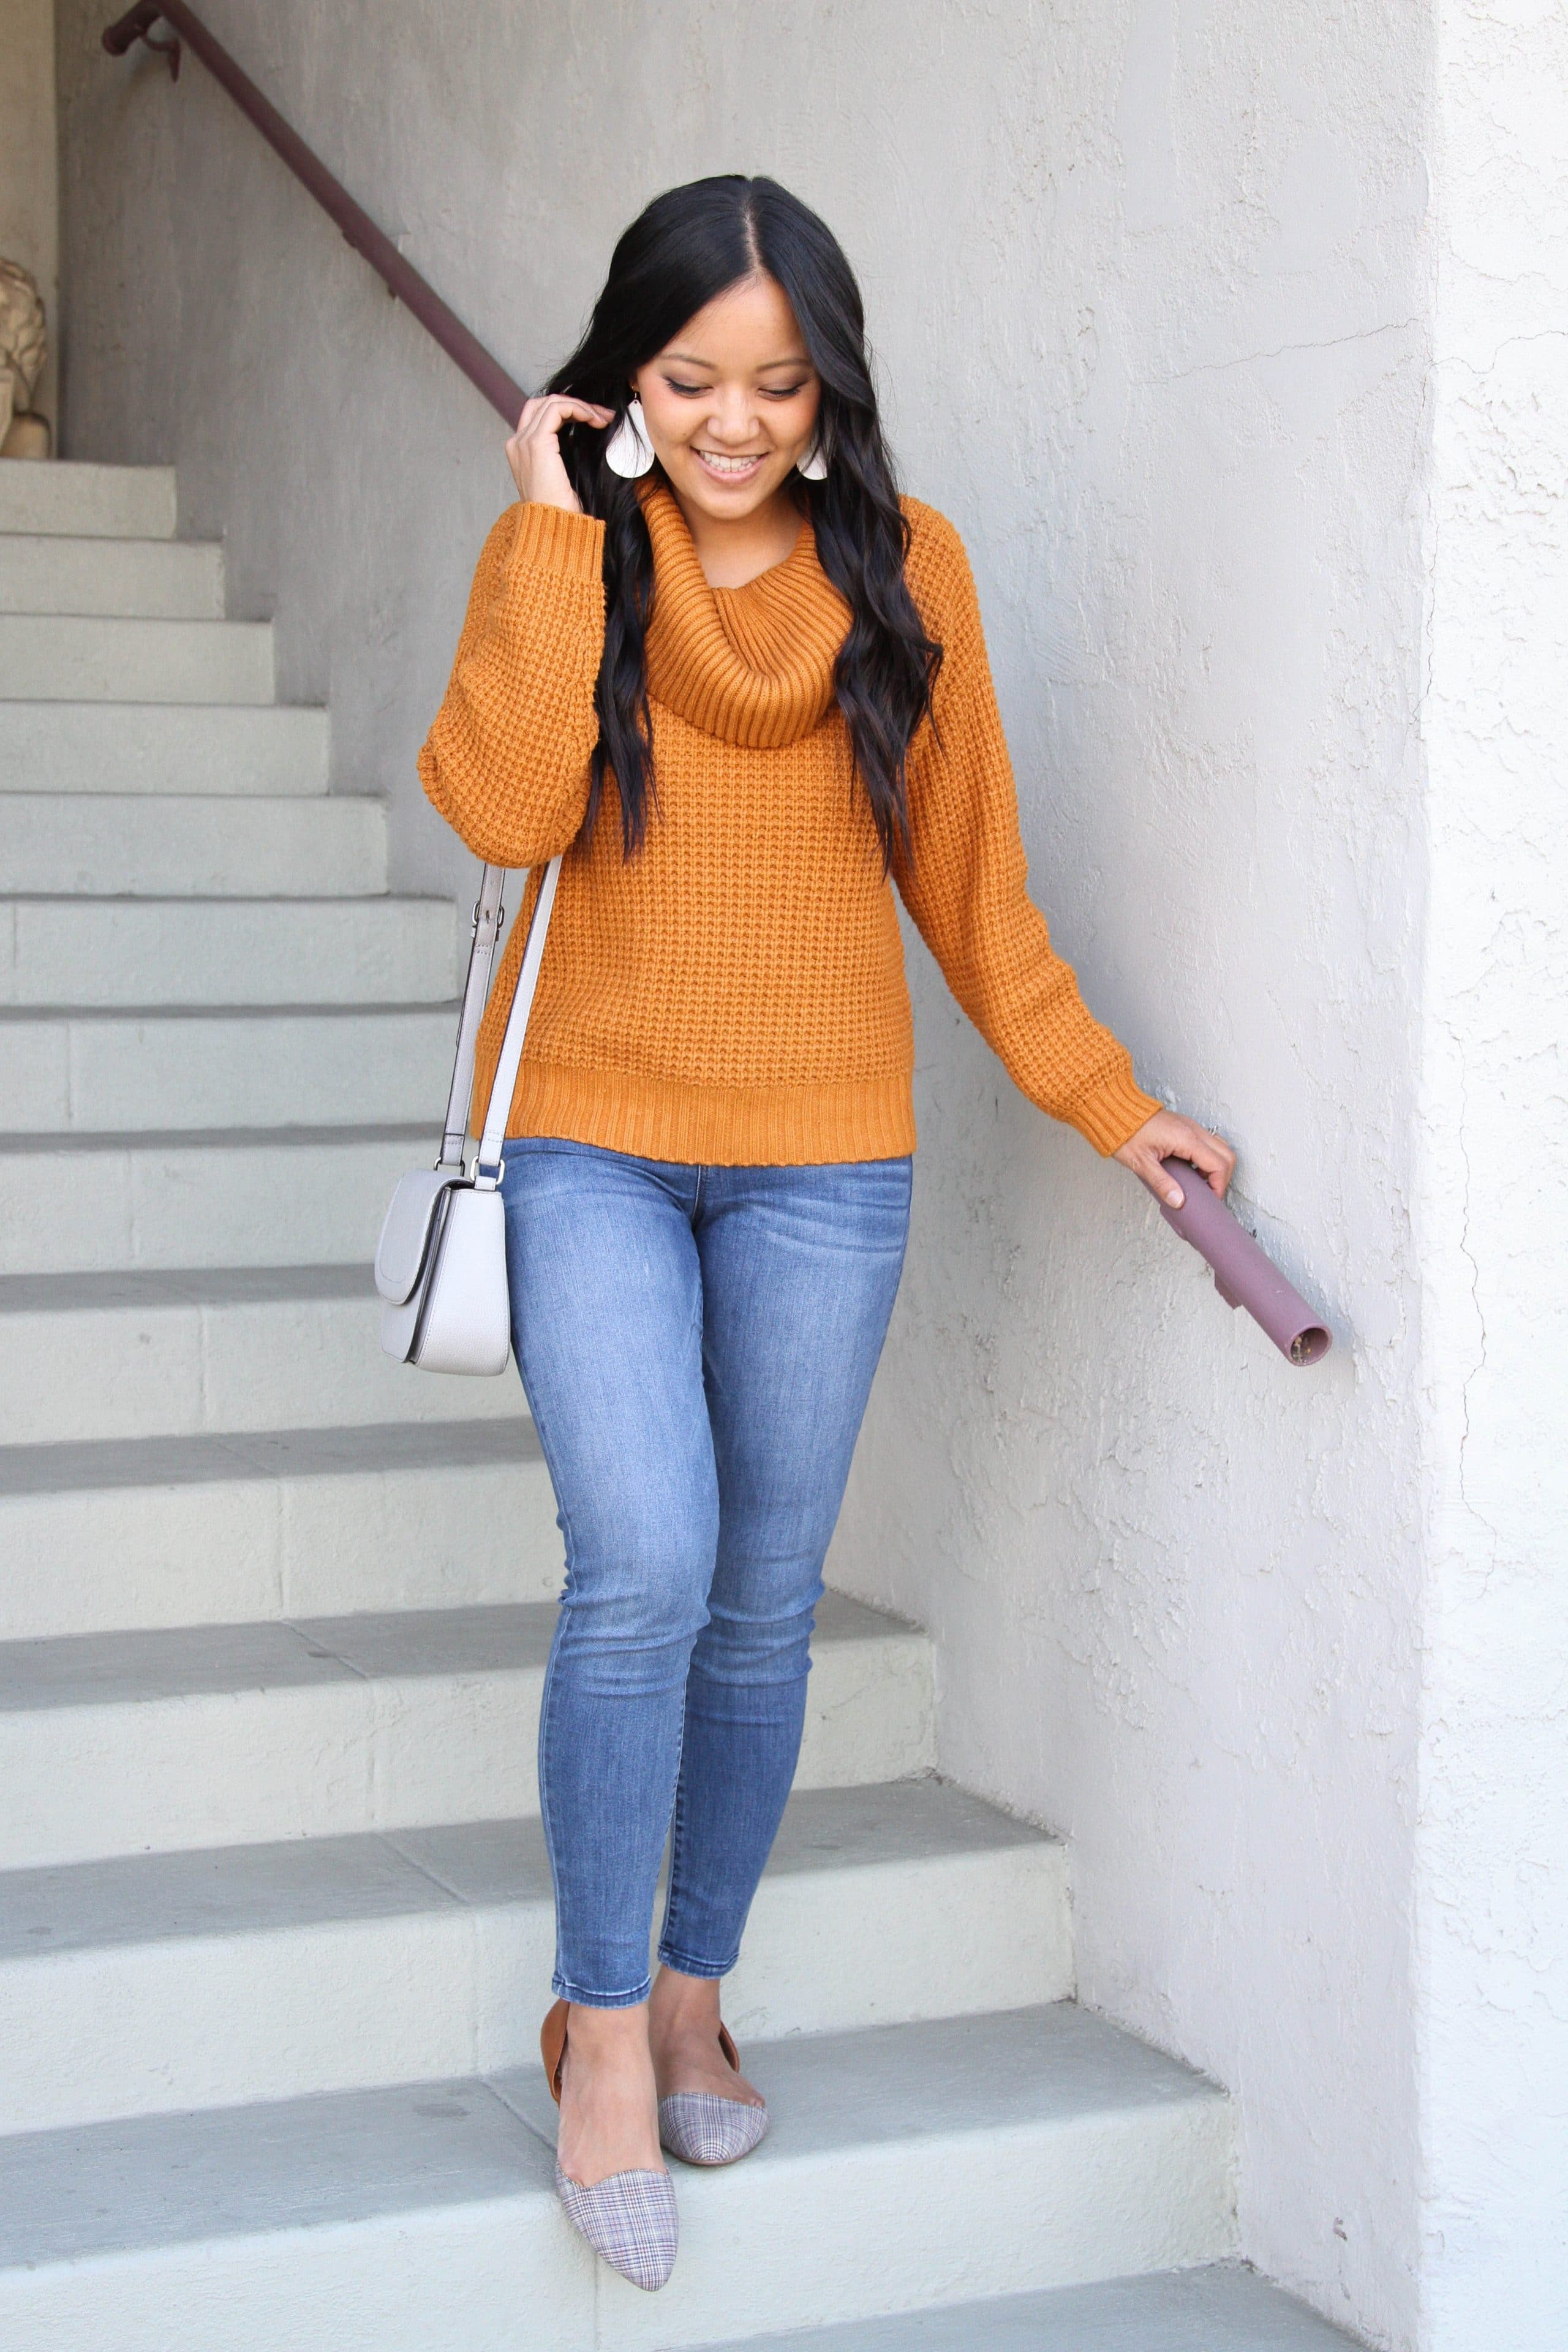 Cowl Neck Sweater + Gray Bag + Light Jeans + Flats + White Earrings